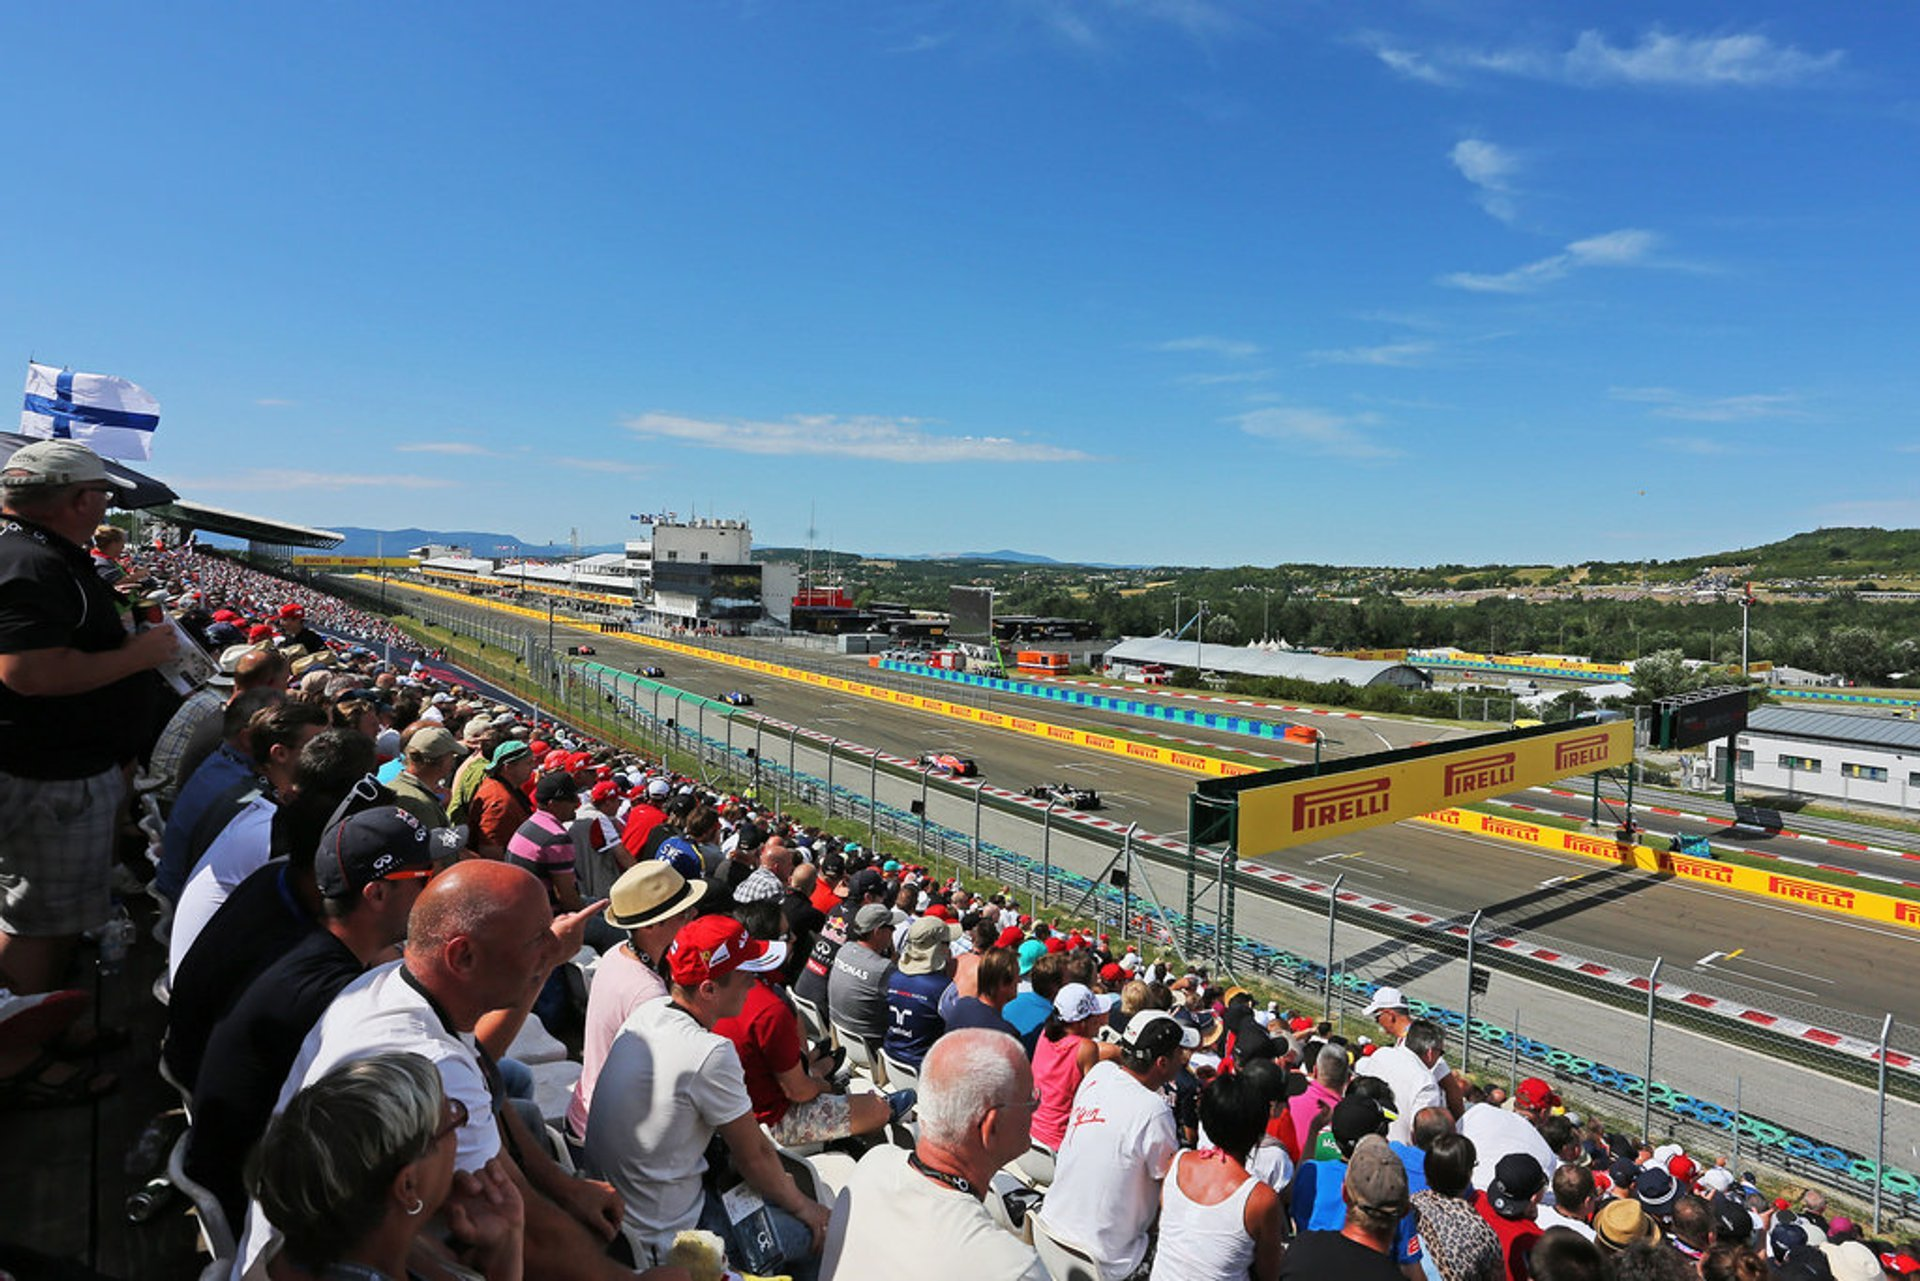 Hungarian F1 Grand Prix in Hungary - Best Season 2020